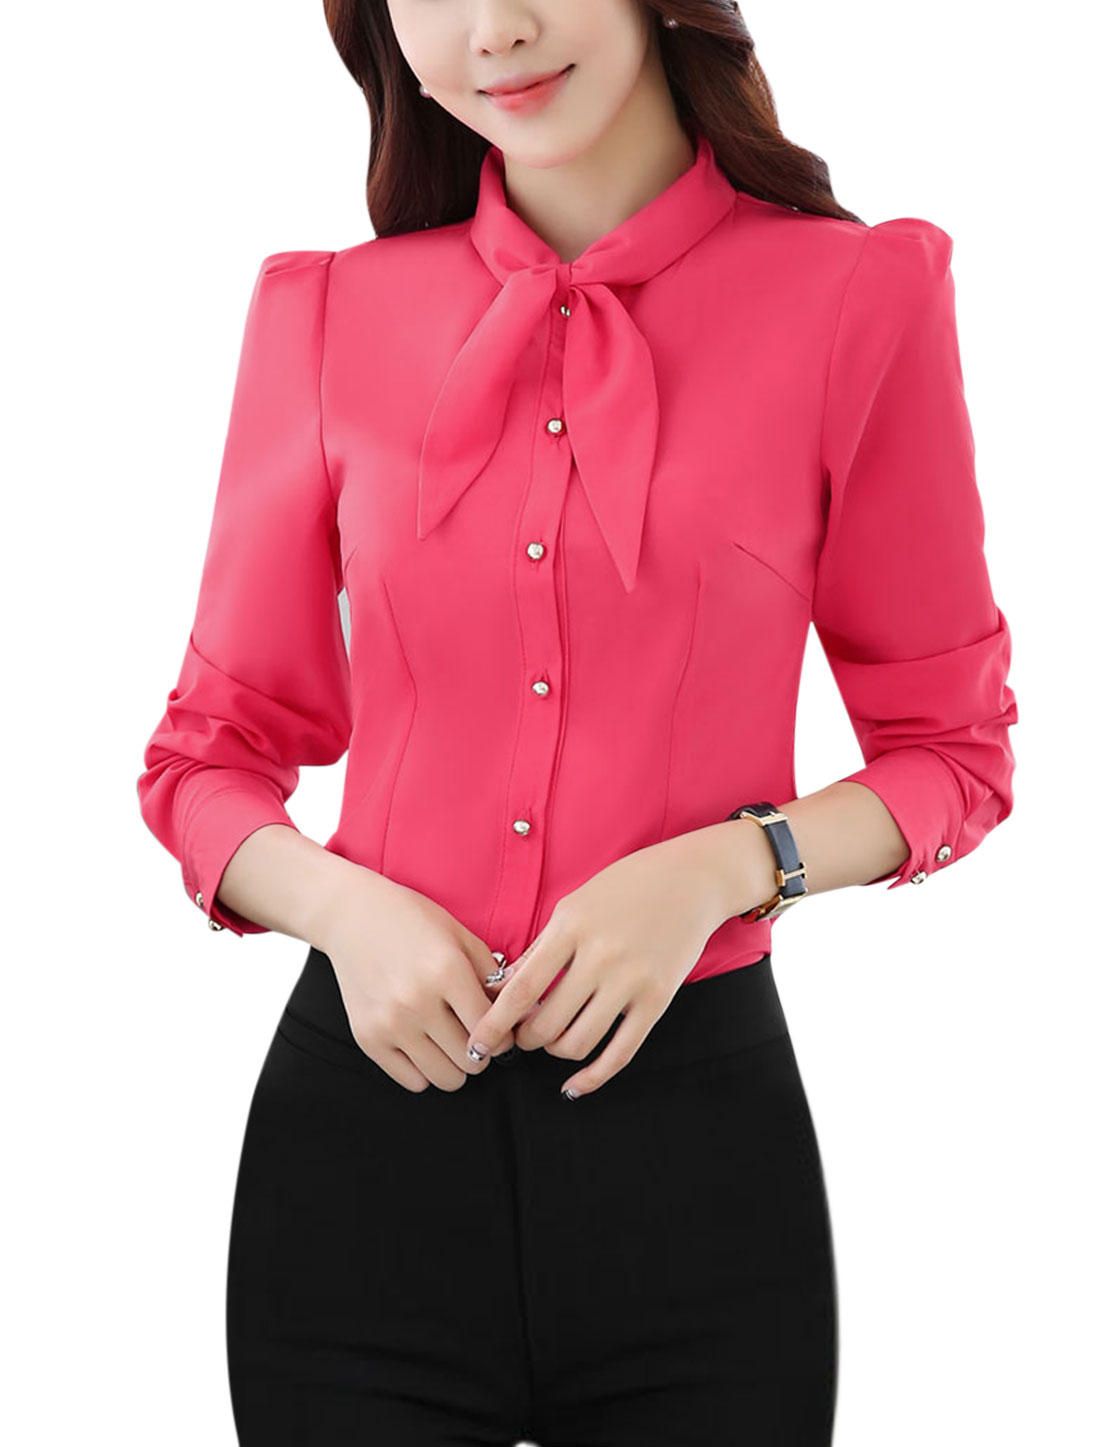 Women Pussybow Neck Single Breasted Slim Fit Shirt Pink M